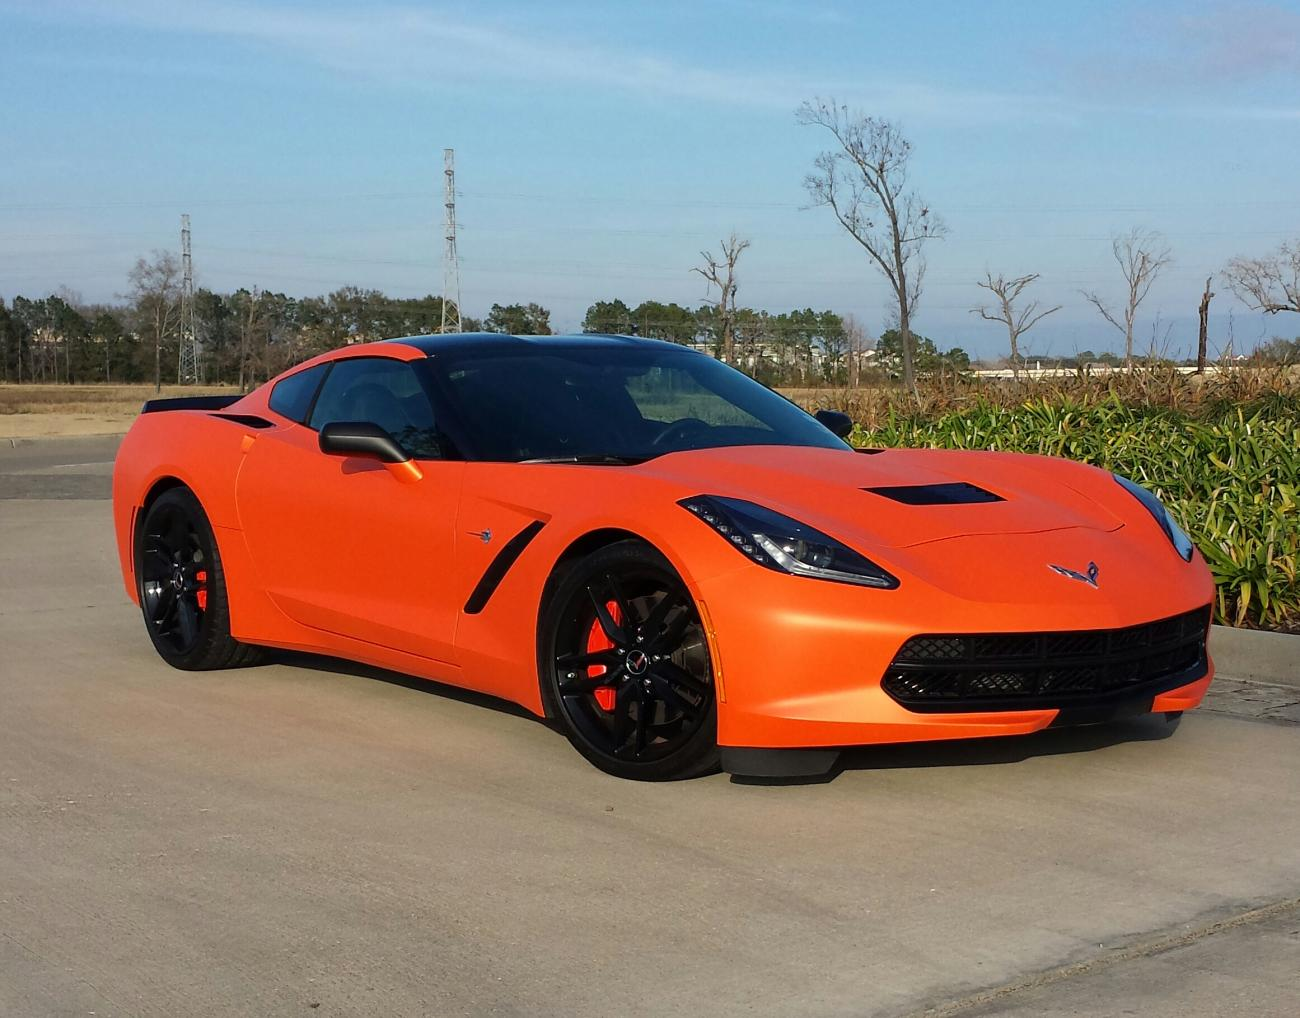 02-11-2014  09 30 PMCorvette Stingray 2014 Orange